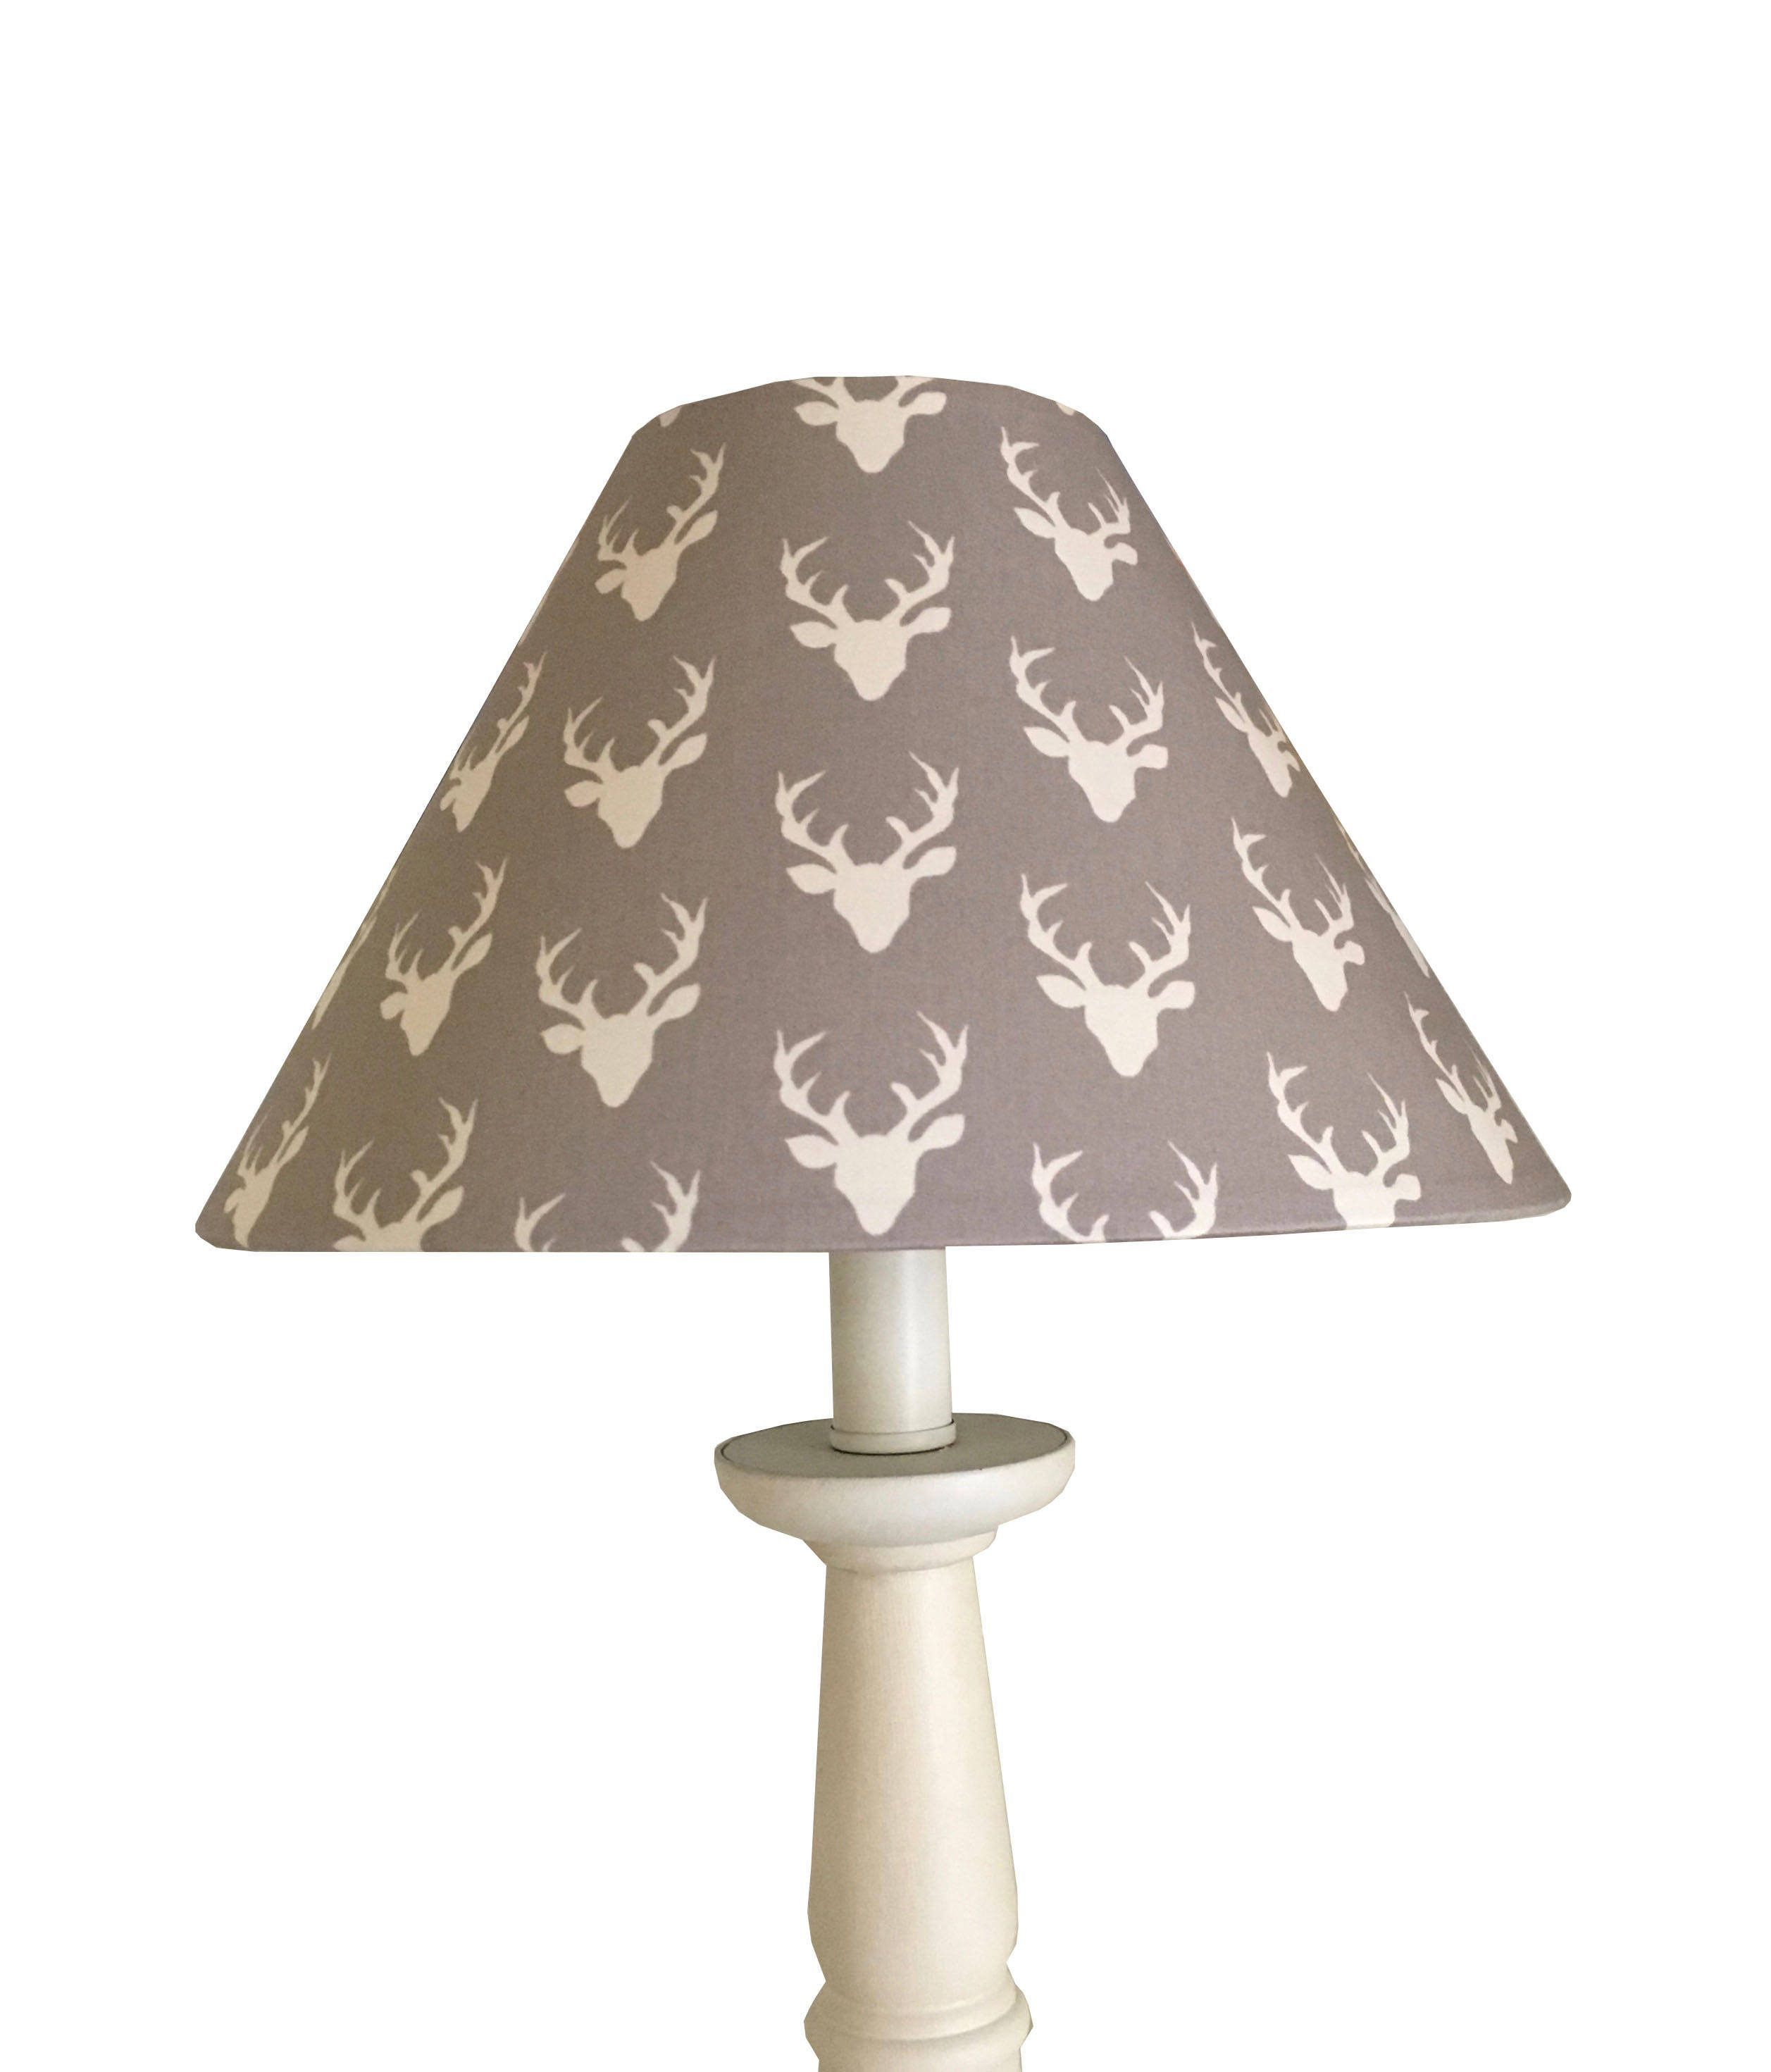 Grey woodland deer lampshade grey antler lamp nursery lampshade grey woodland deer lampshade grey antler lamp nursery lampshade hello bear mini buck forest mist baby boy baby girl room table lamp geotapseo Choice Image